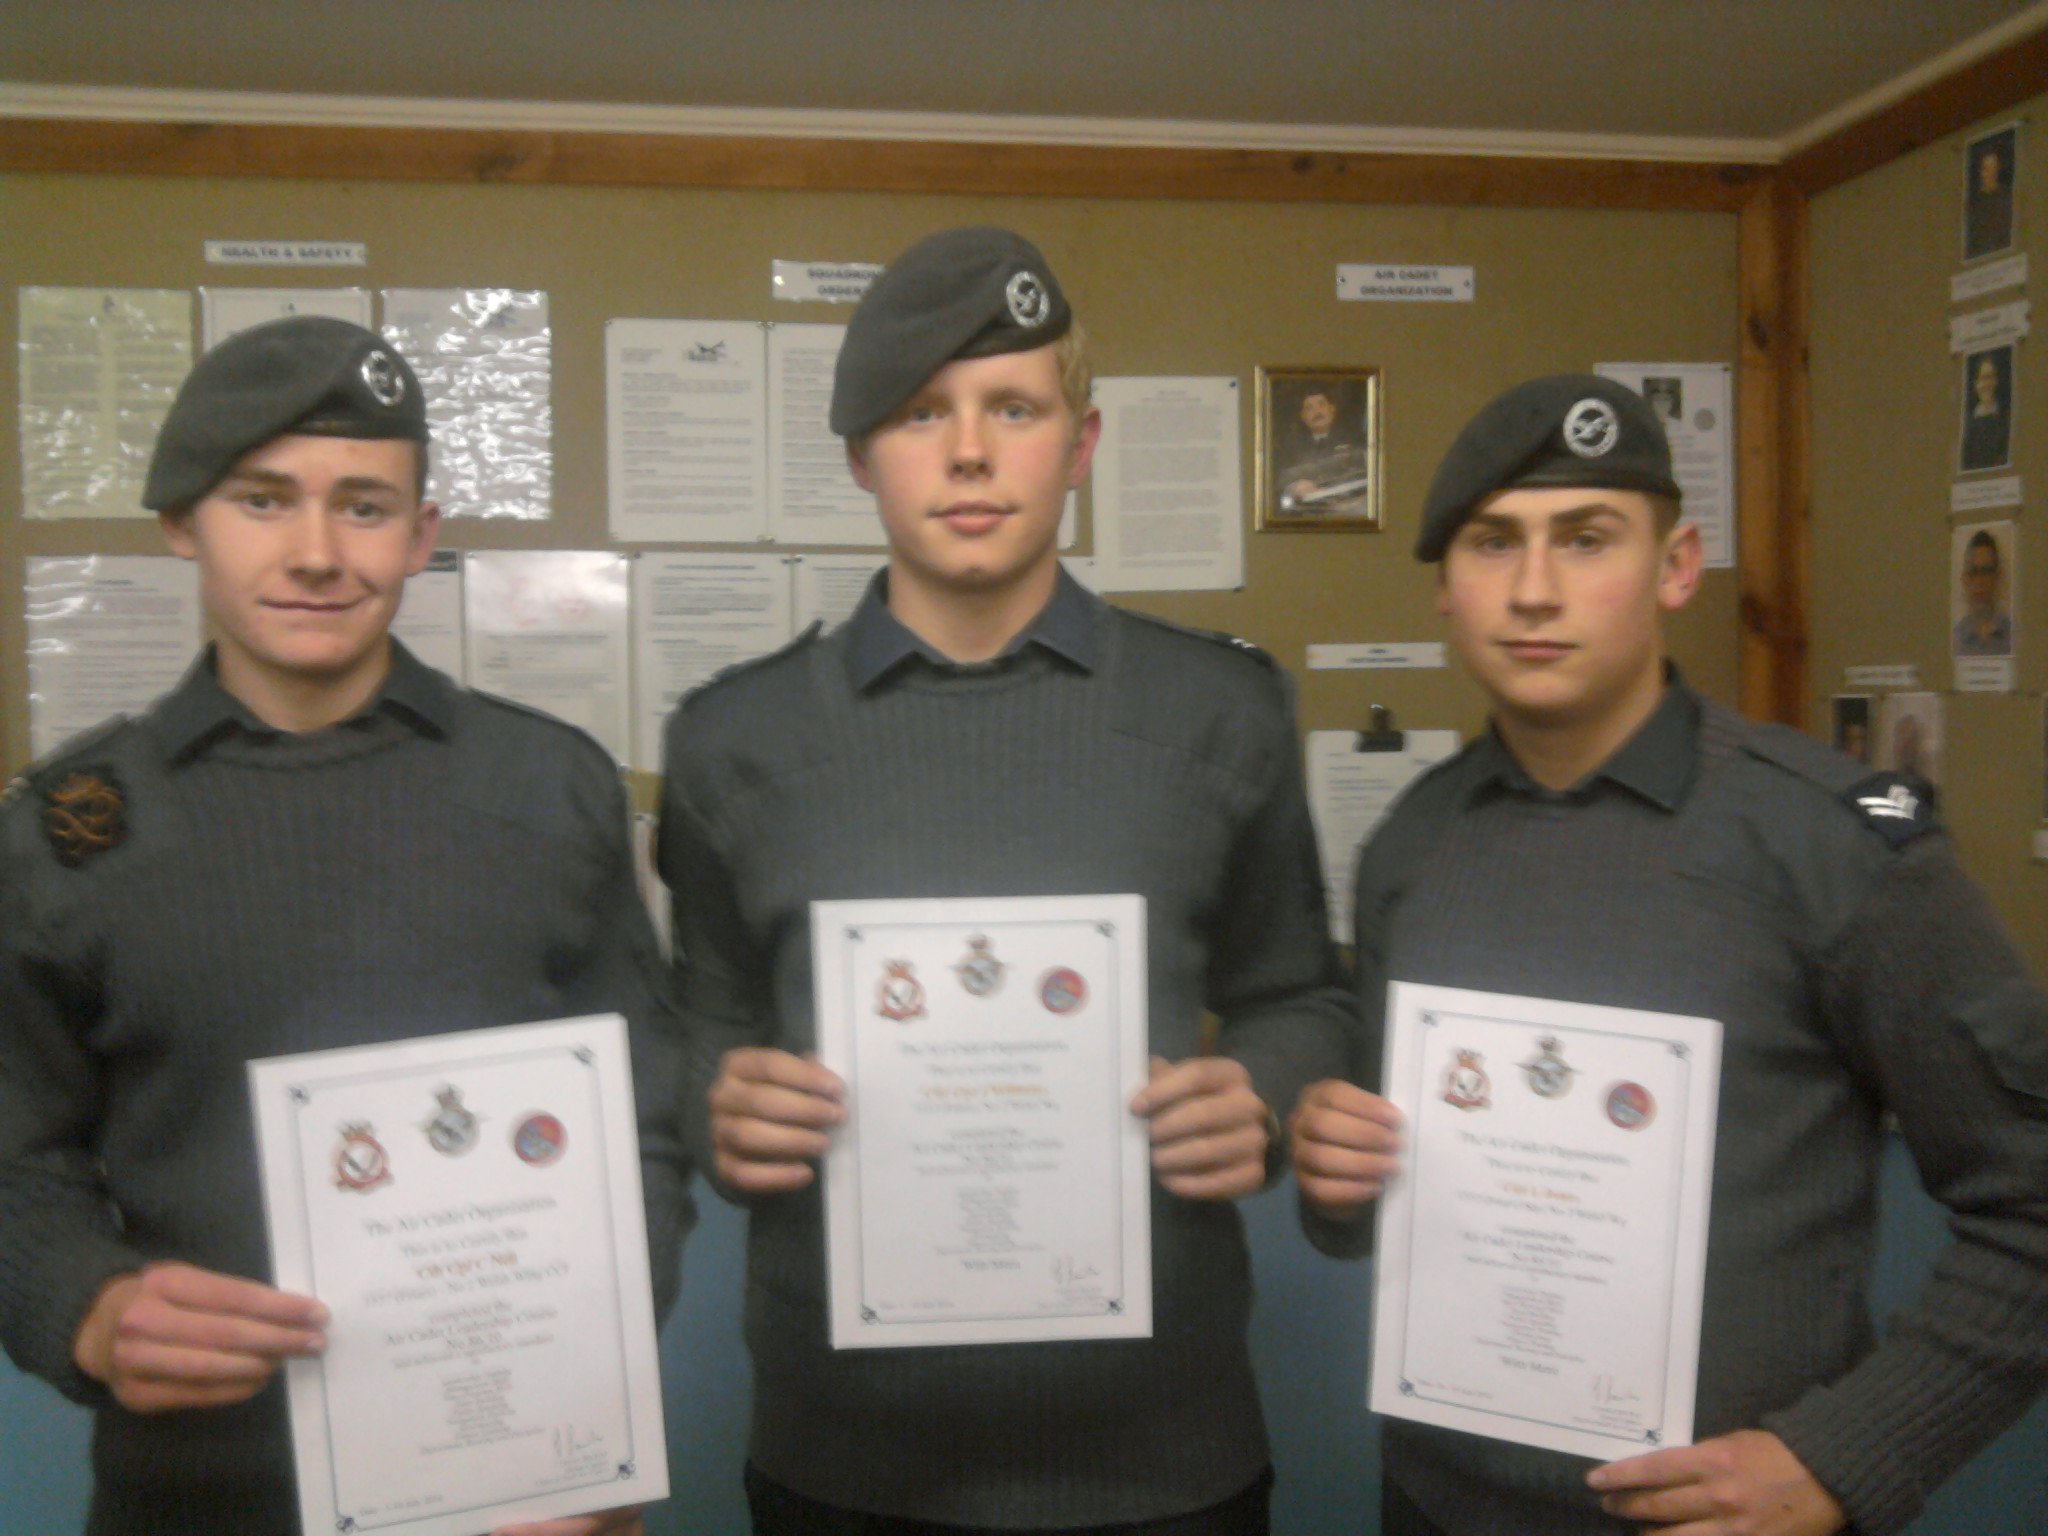 Sgt Craig Neil, Cpl Jacob Williams and Cpl Llyr Jones with their certificates